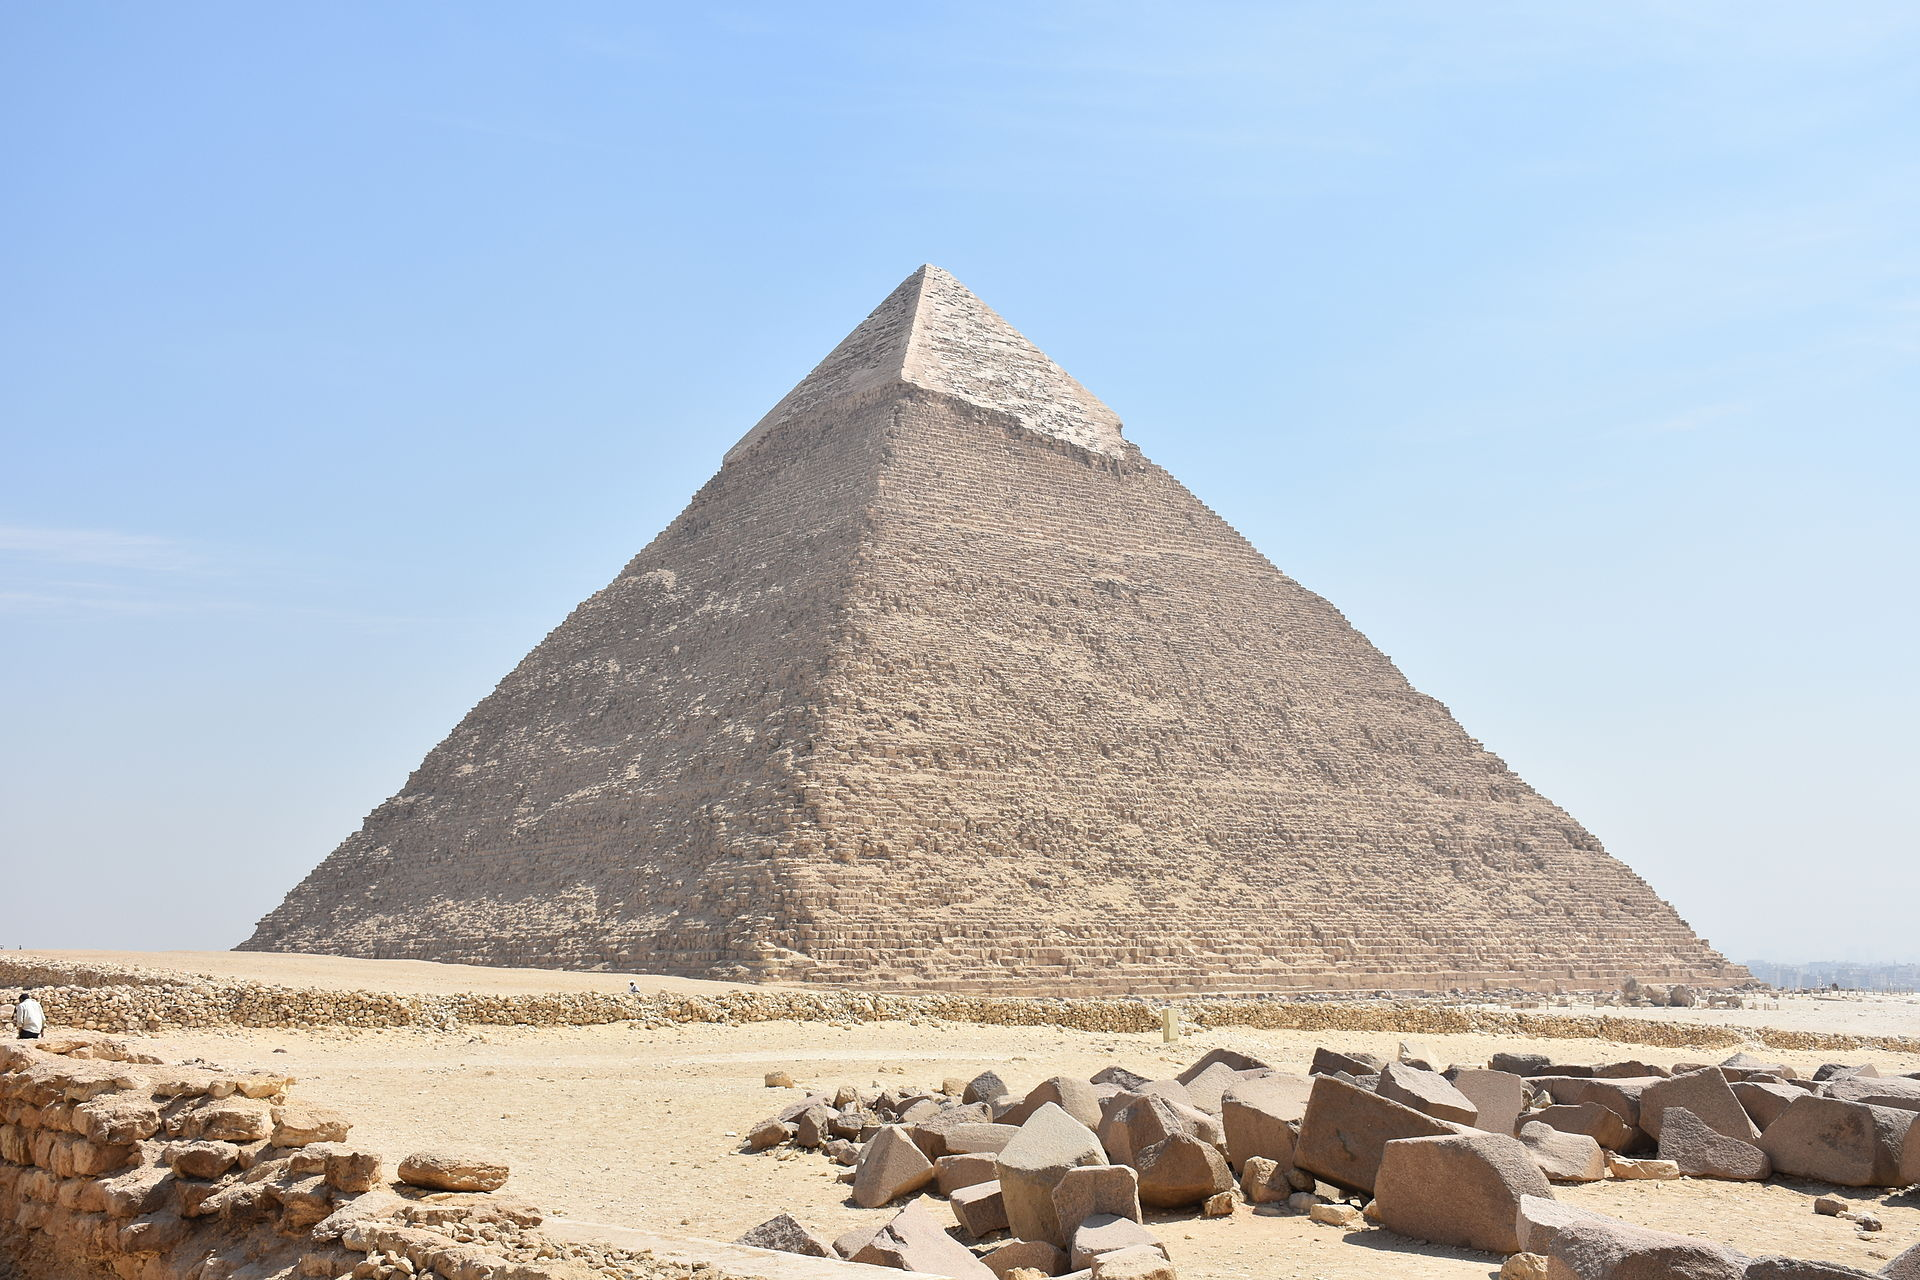 pyramids of egypt research paper Pyramids of giza essaysone of the great wonders of the world is the great pyramids at giza how in the world did the egyptians build such a building.